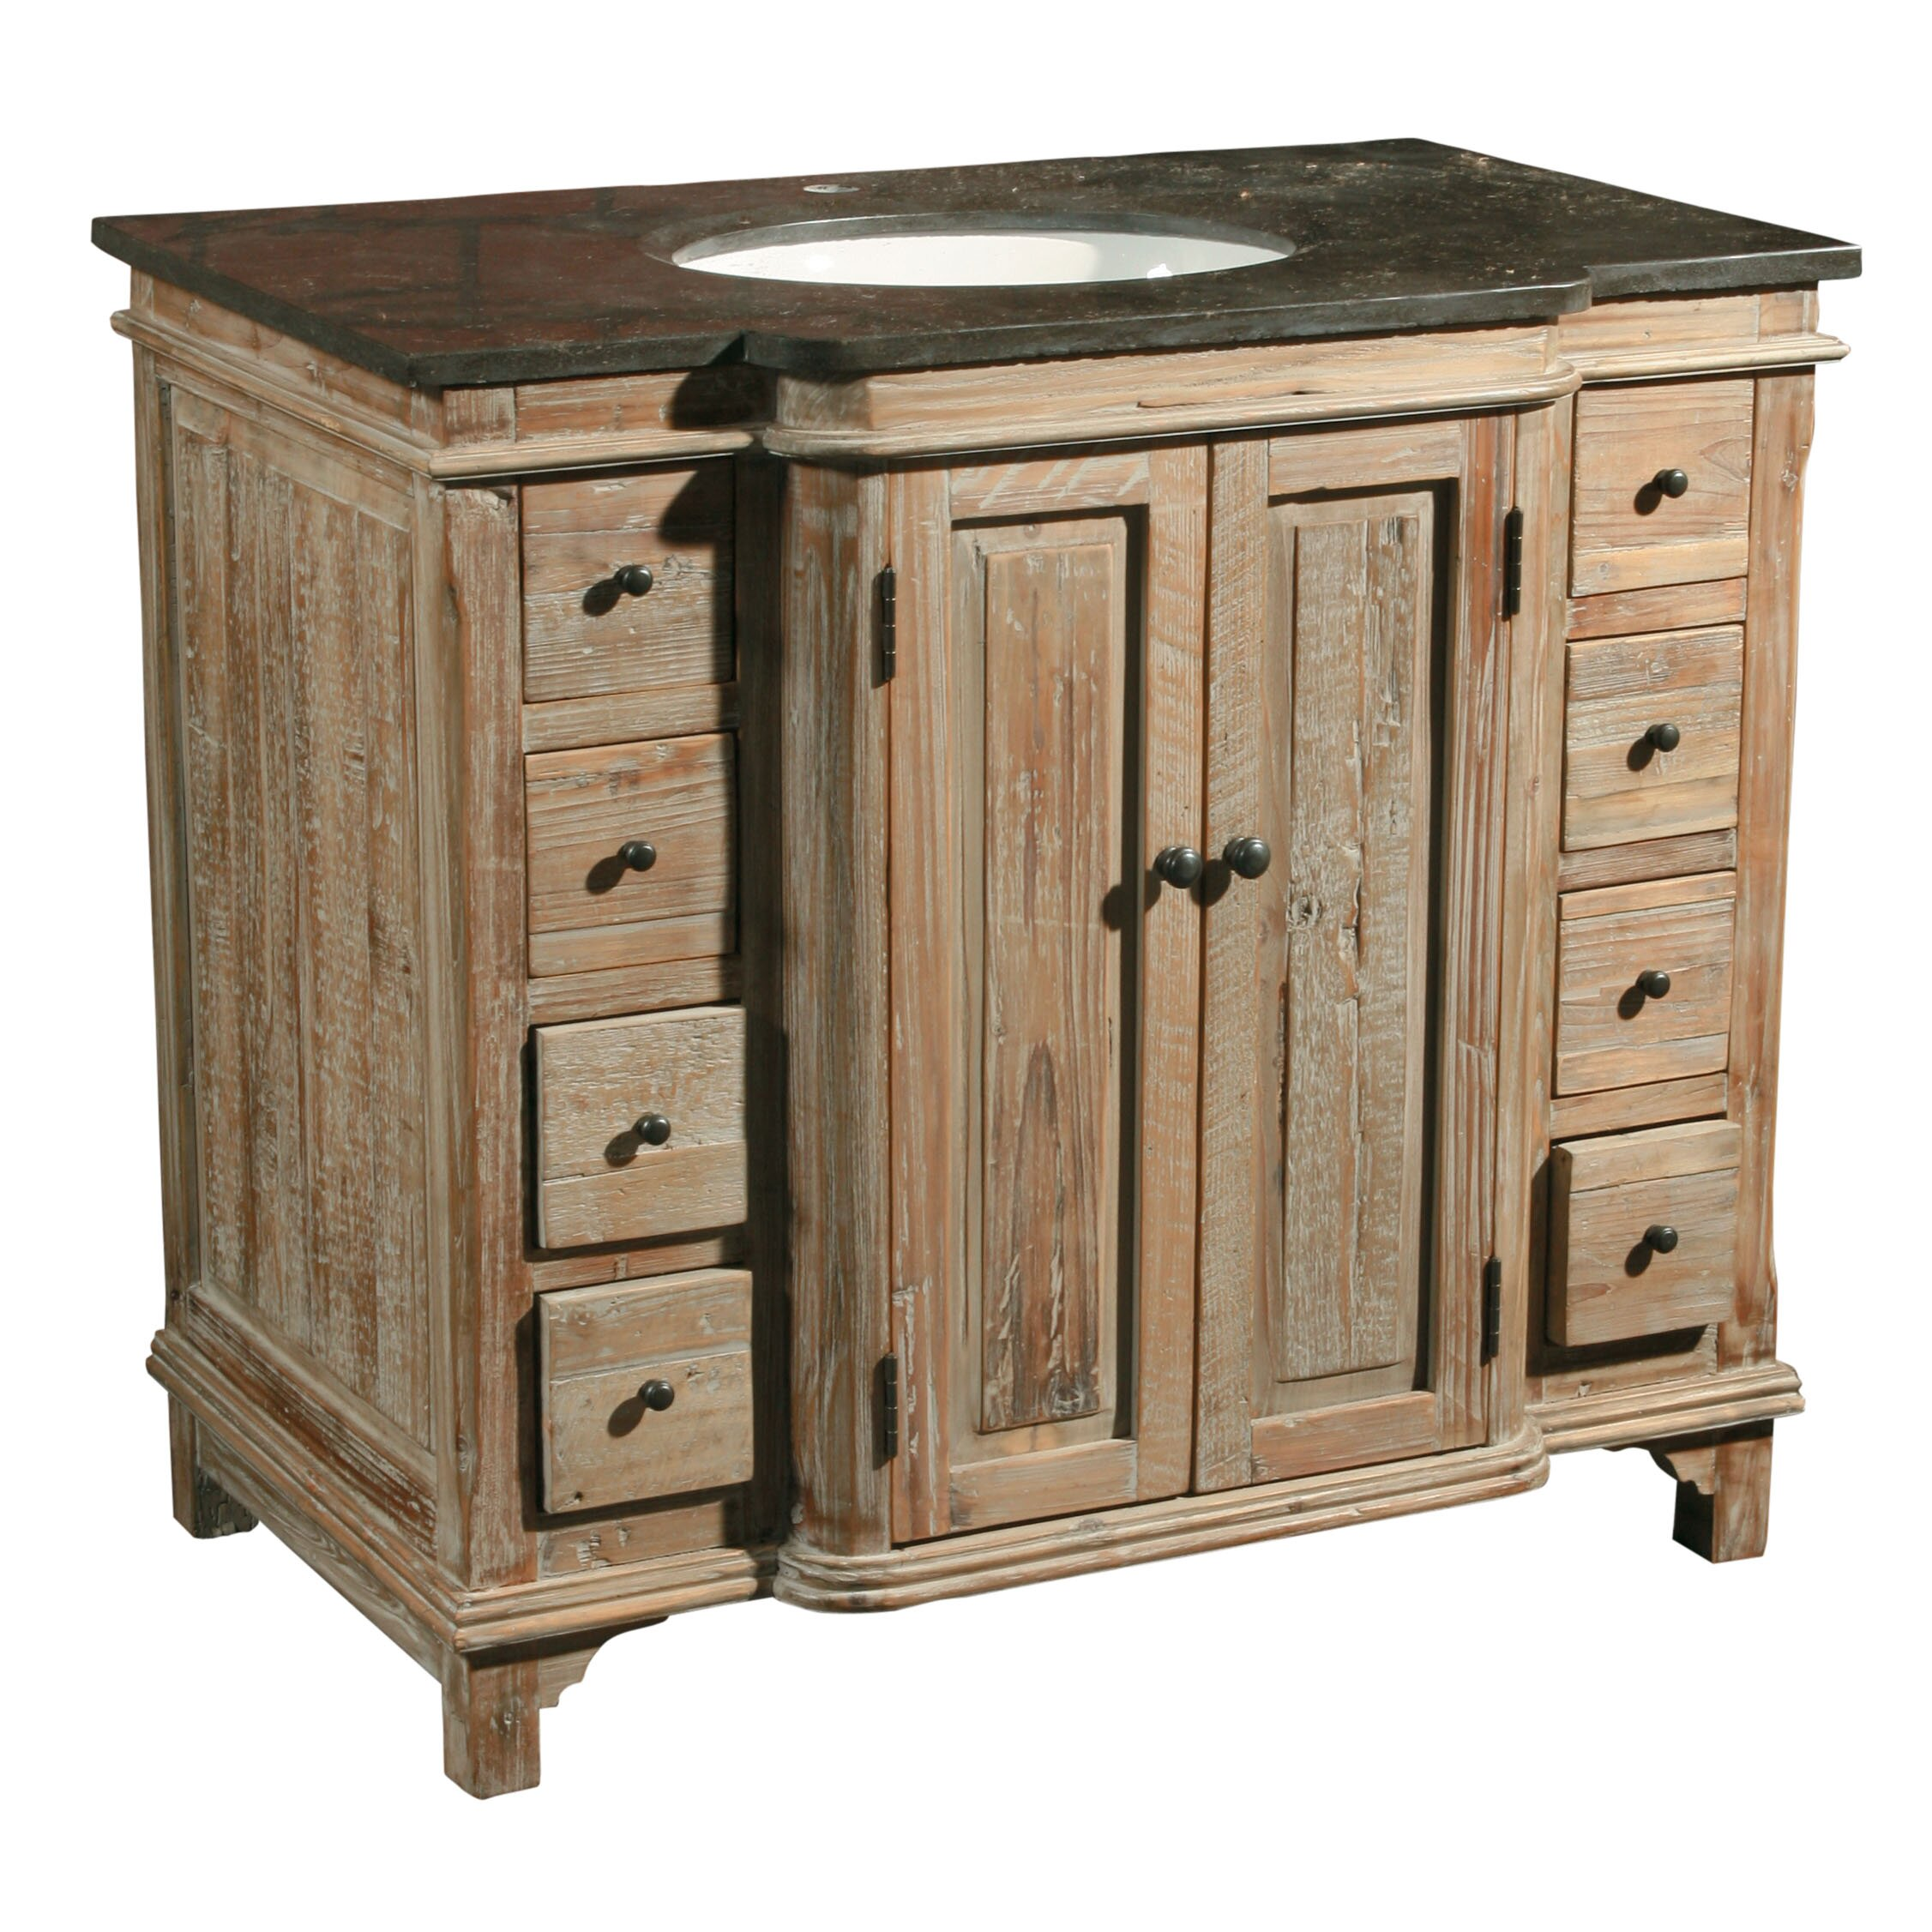 Furniture classics ltd 36 single reclaimed pine bathroom - Wayfair furniture bathroom vanities ...